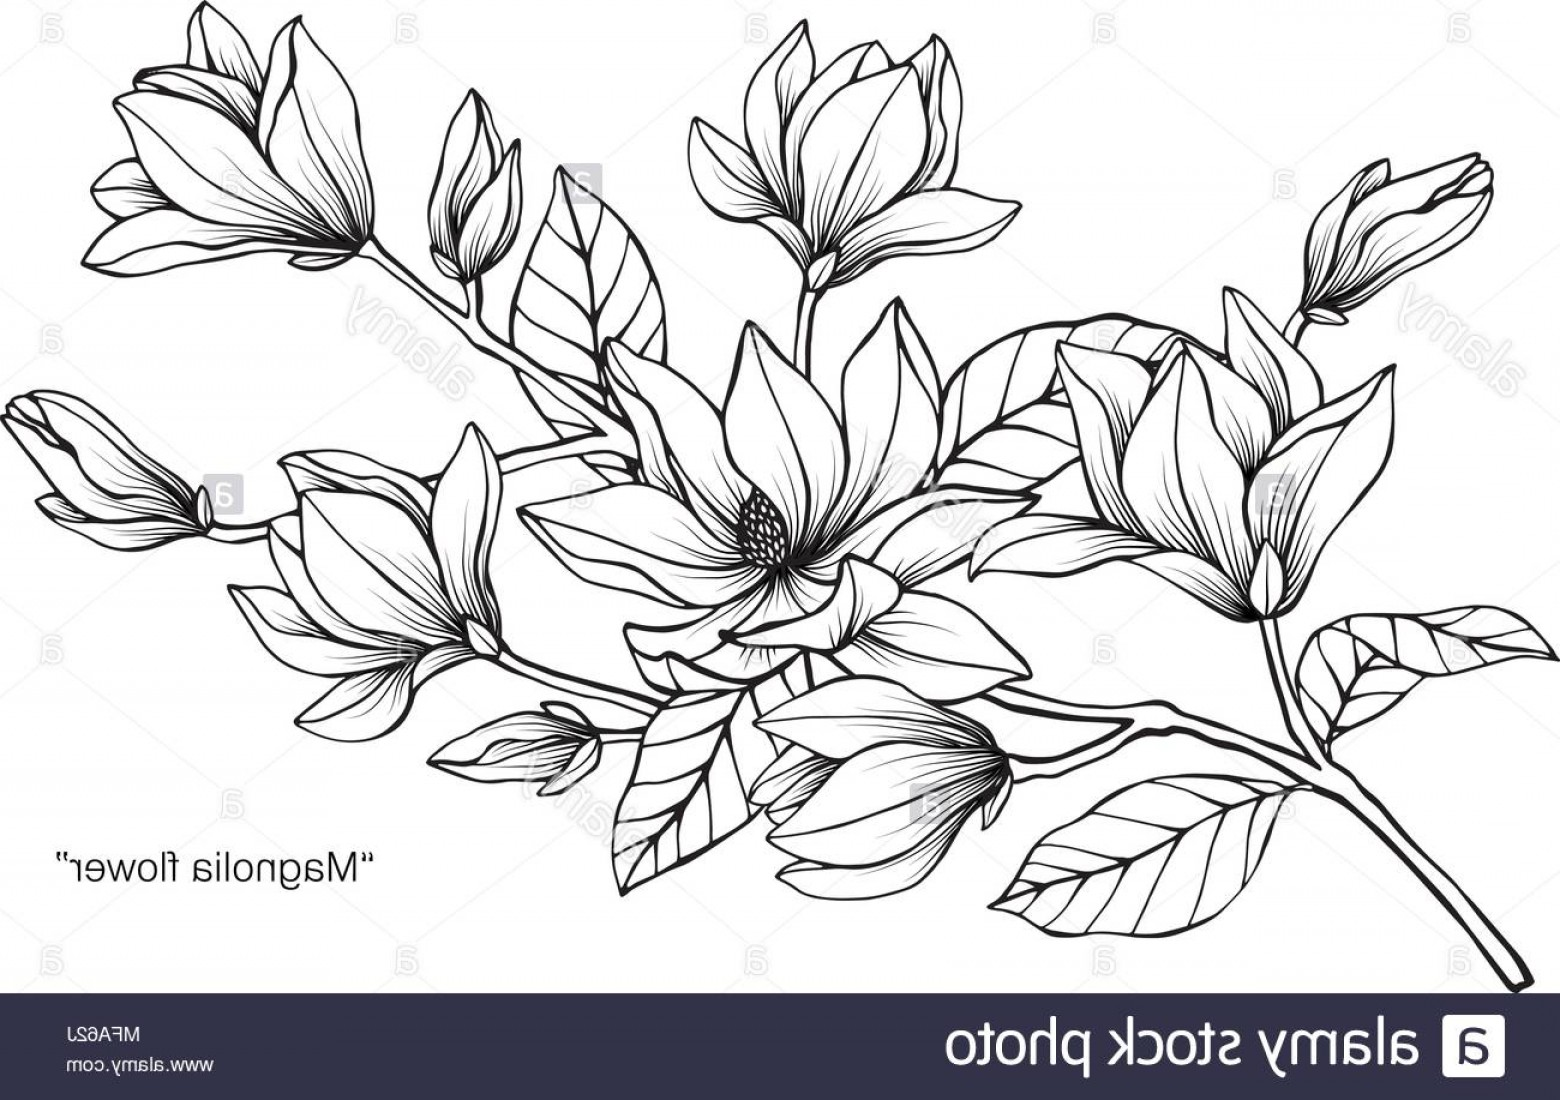 Magnolia Black And White Vector: Magnolia Flower Drawing Illustration Black And White With Line Art On White Backgrounds Image